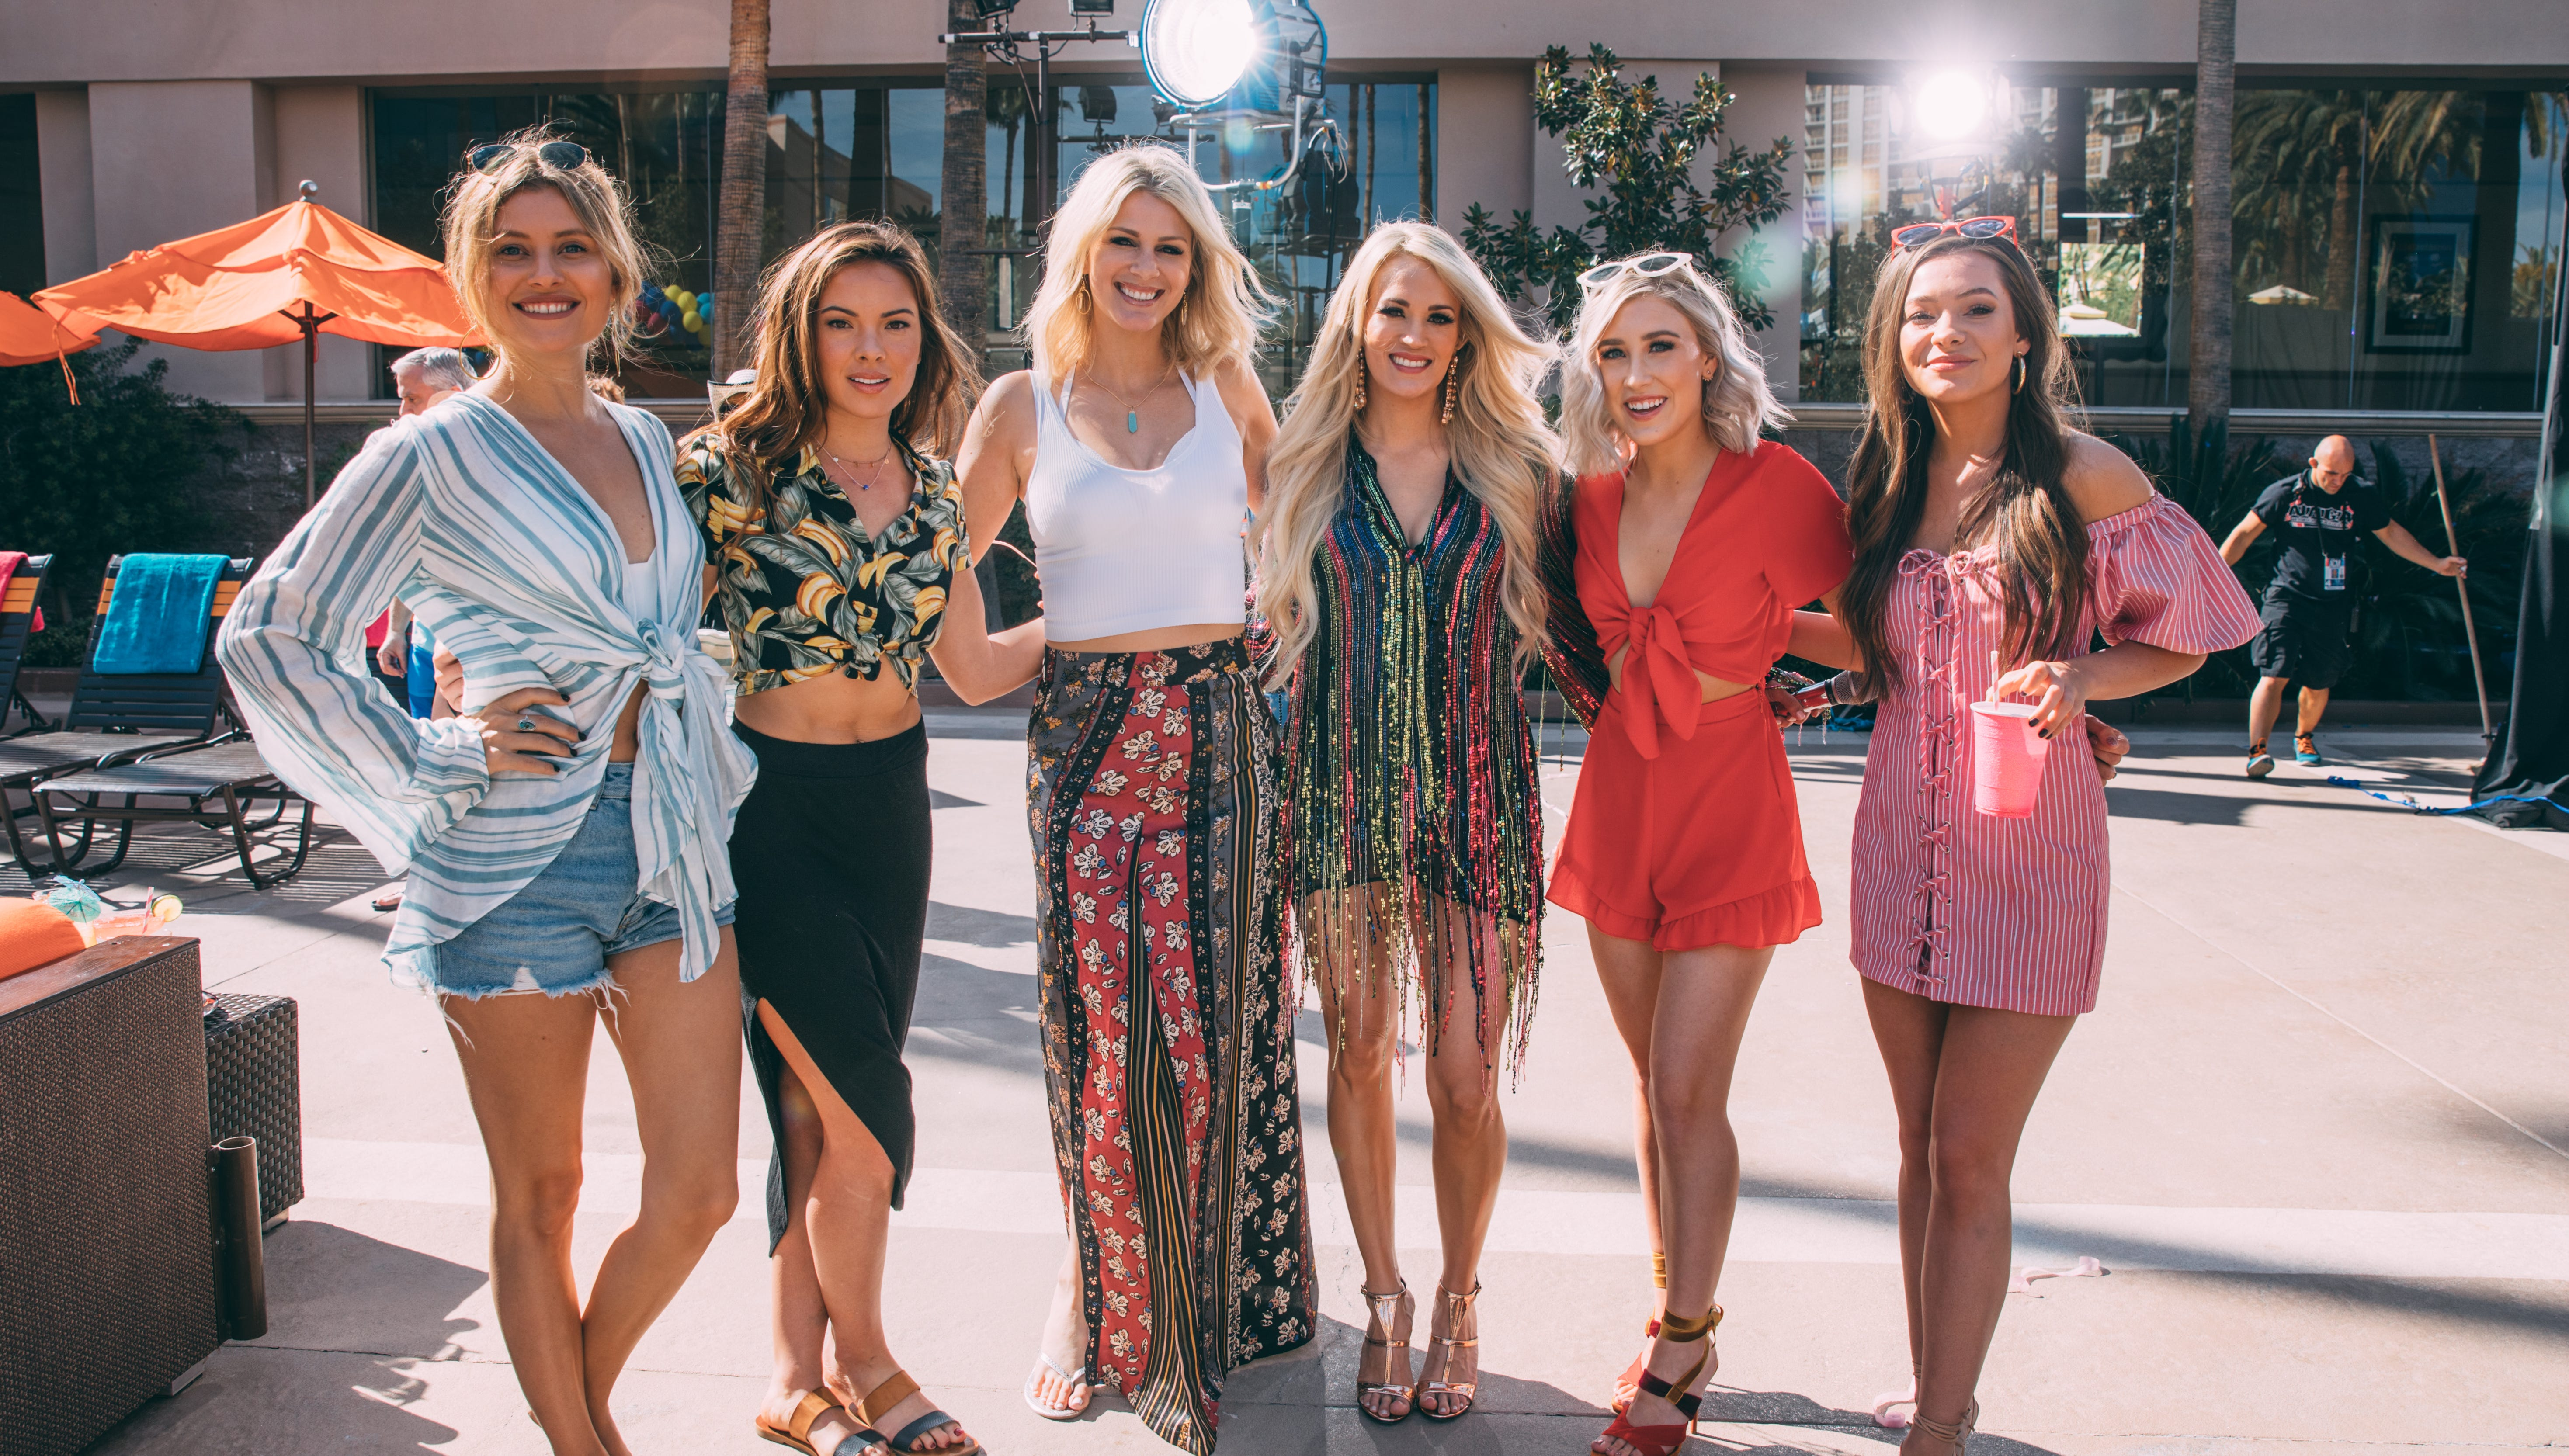 Why Carrie Underwood's 'Cry Pretty Tour 360' is all women and probably 'the chillest tour we've ever been on'